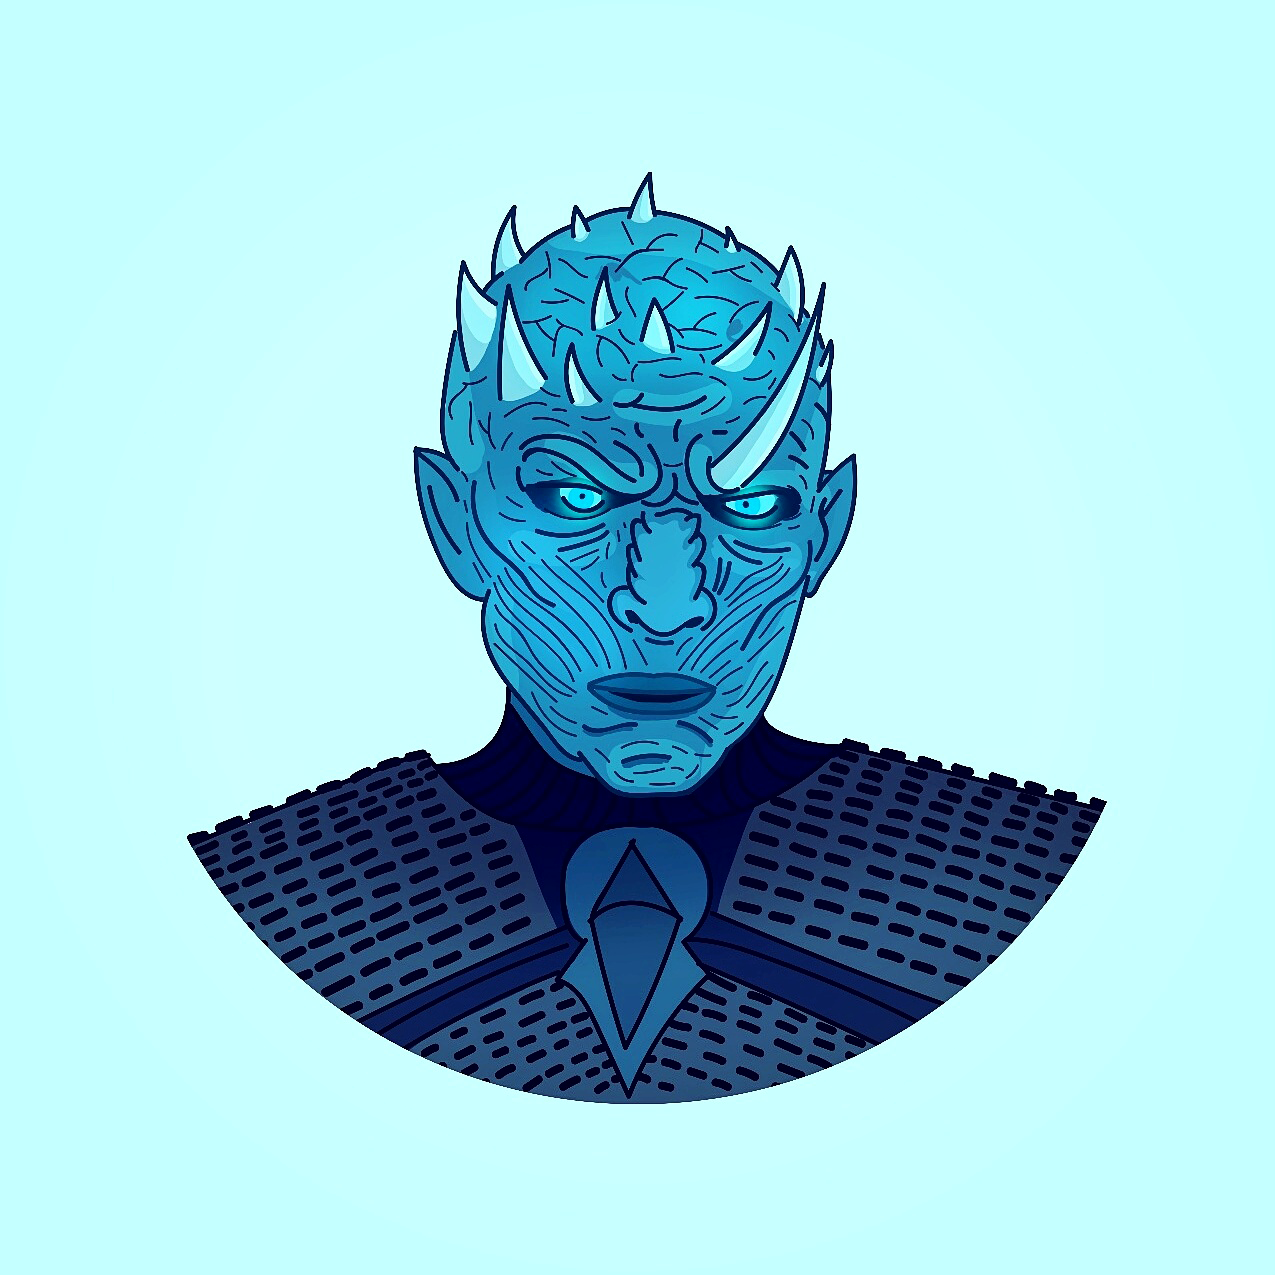 The Night S King Game Of Thrones Illustration Game Of Thrones Illustrations Kings Game Color Pop